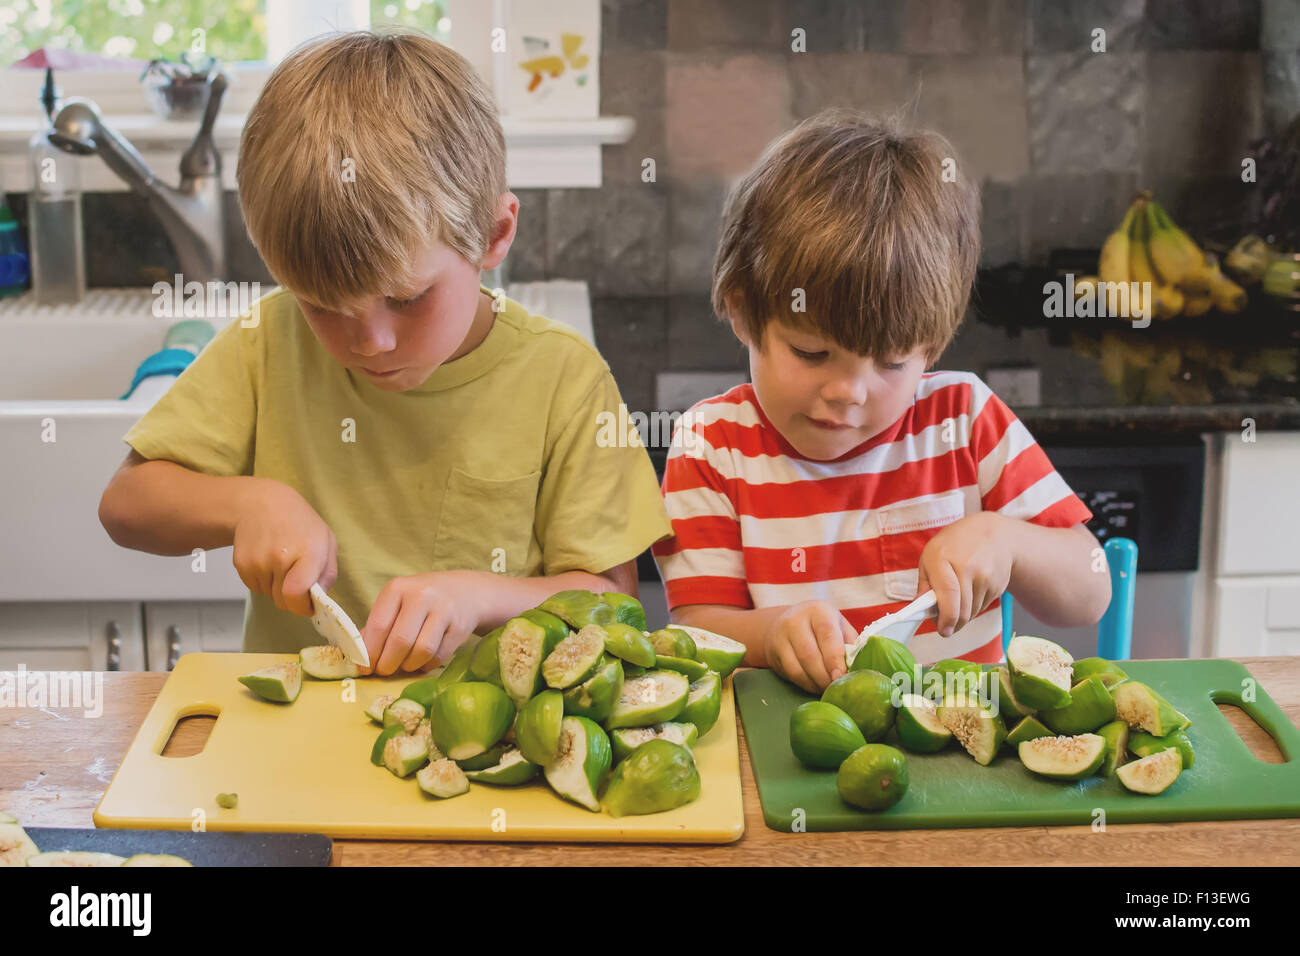 Two boys chopping figs in the kitchen - Stock Image